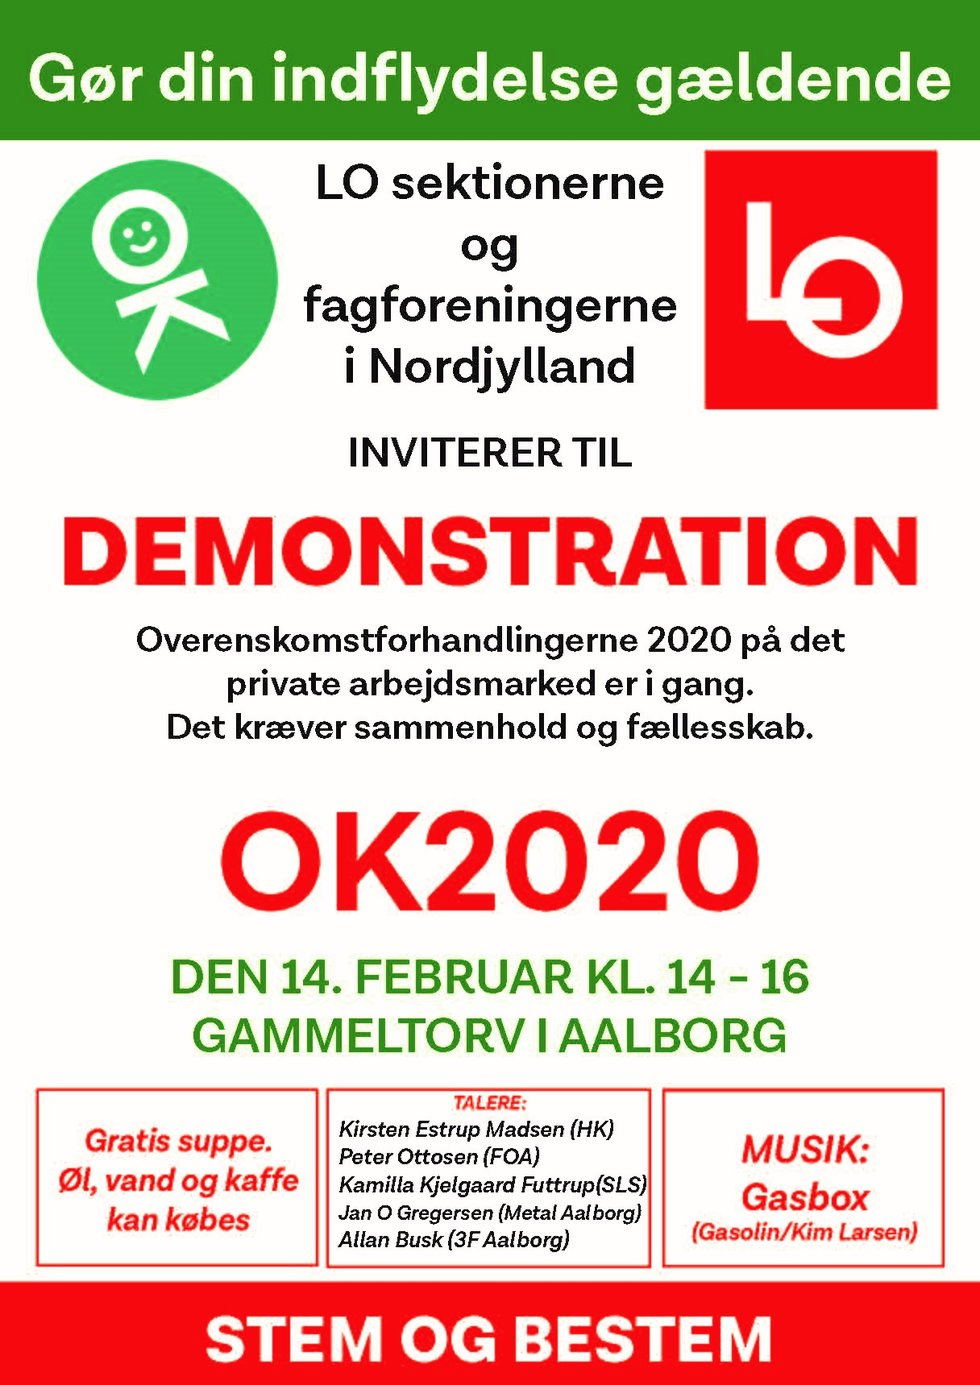 OK20-demonstration